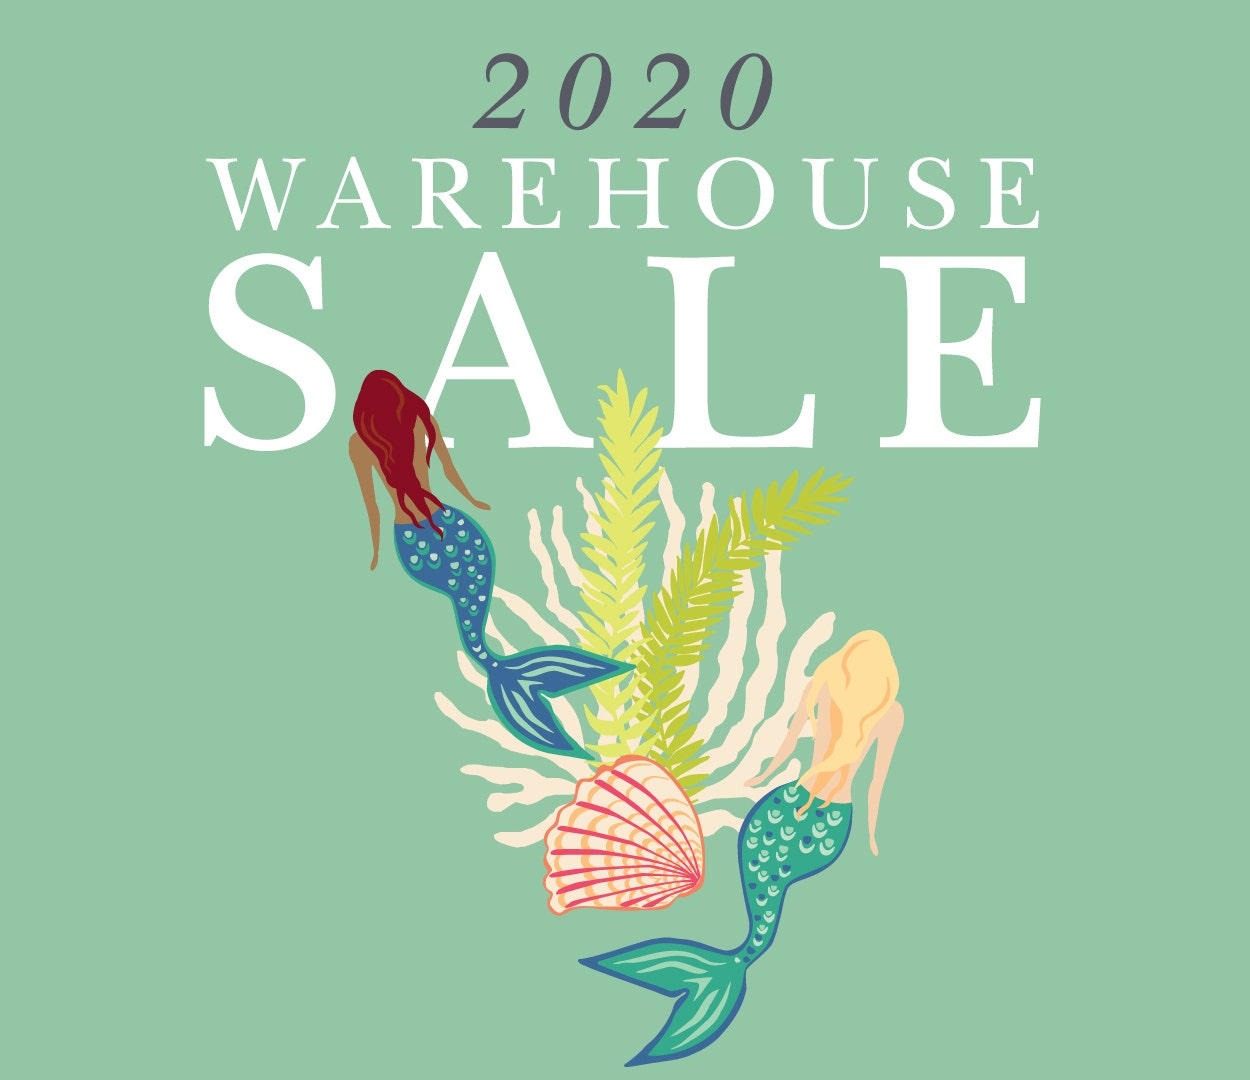 The 8th Annual Warehouse Sale